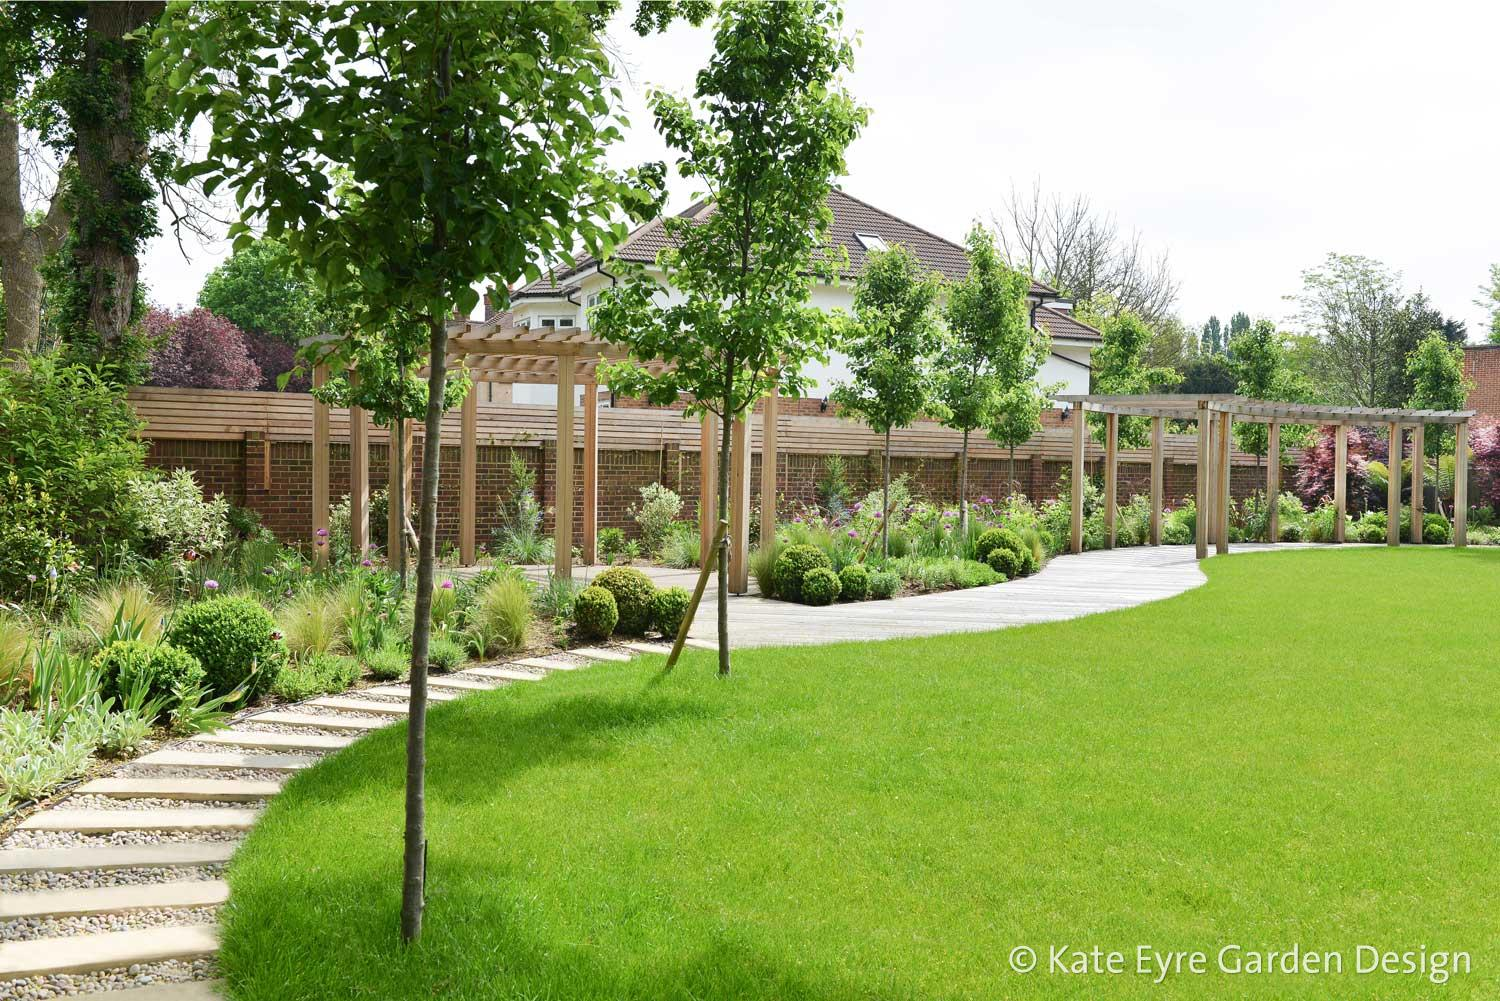 Kate Eyre Garden Design: Streatham, South London